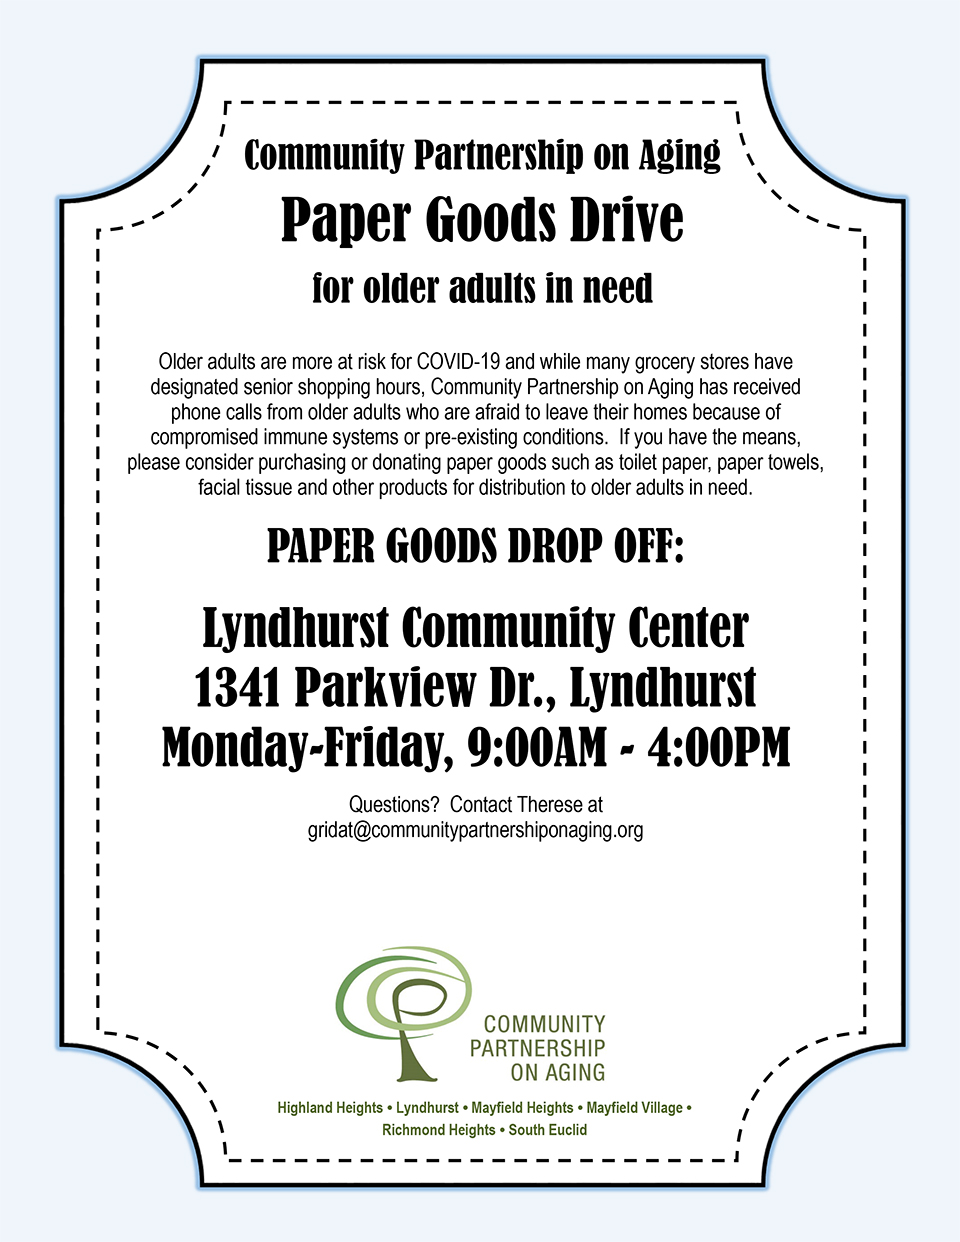 Community Partnership on Aging Paper Goods Drive flier.